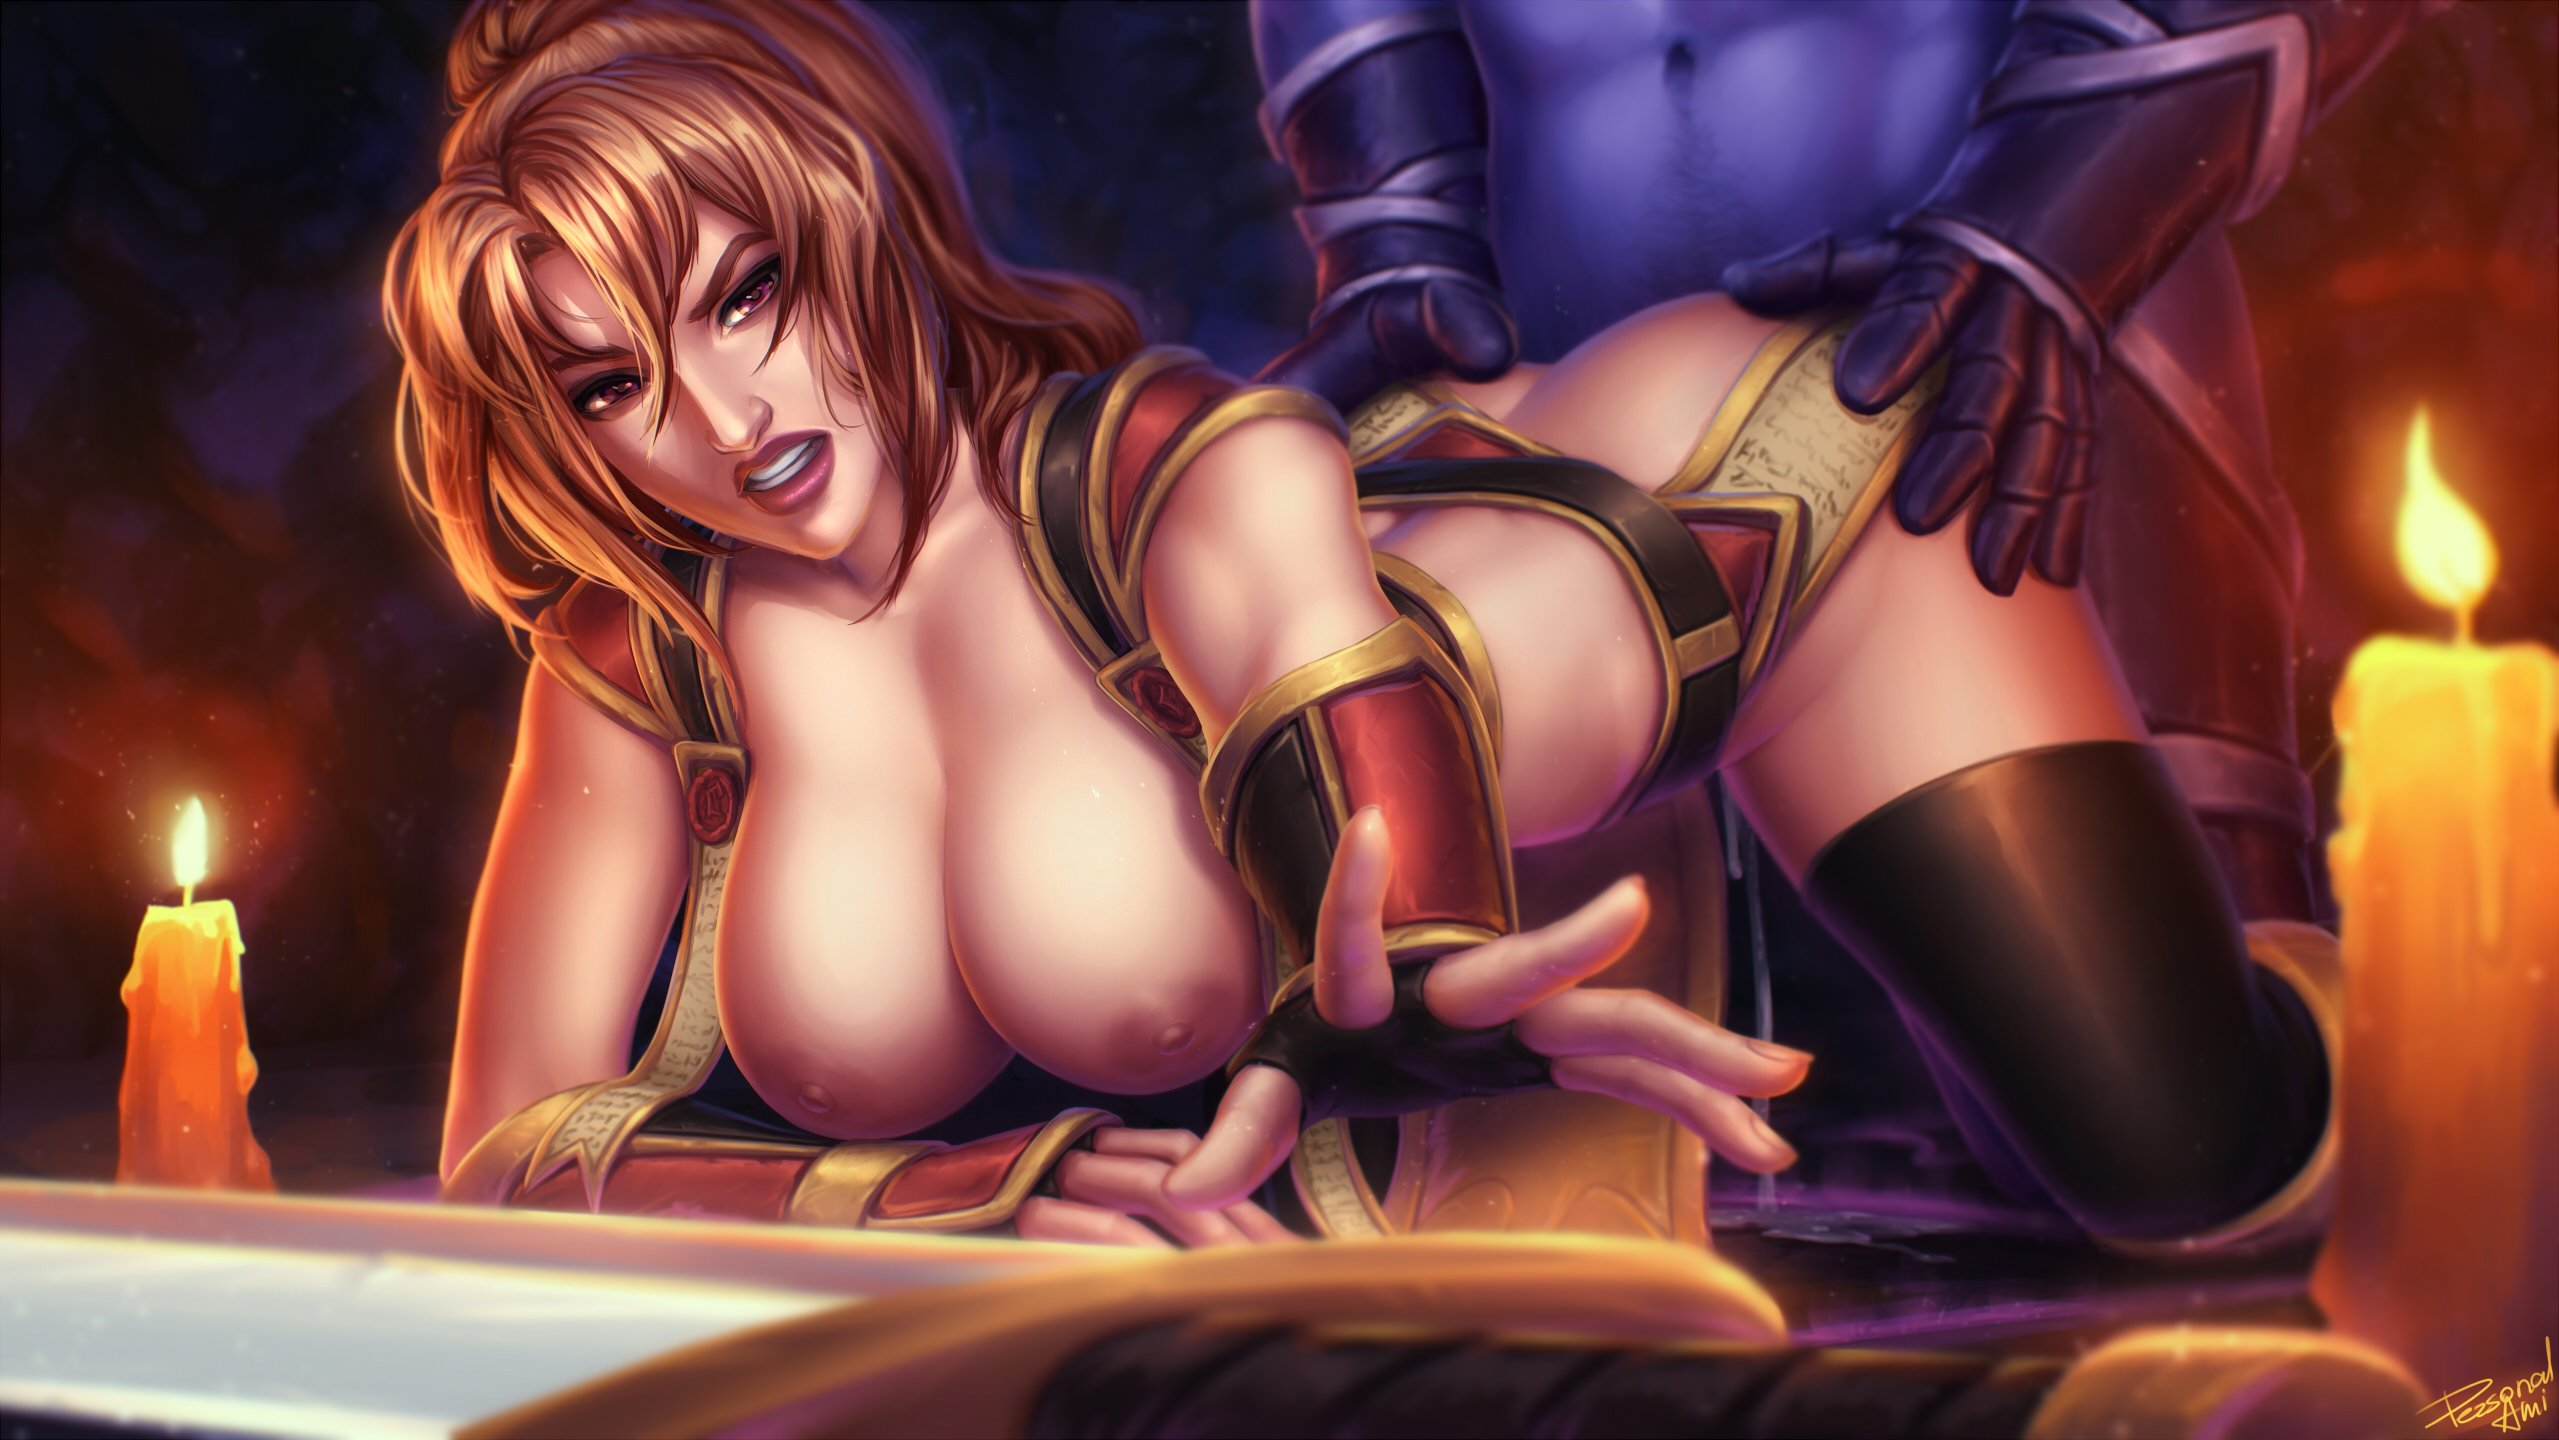 World of warcraft hd porn pics sex movies